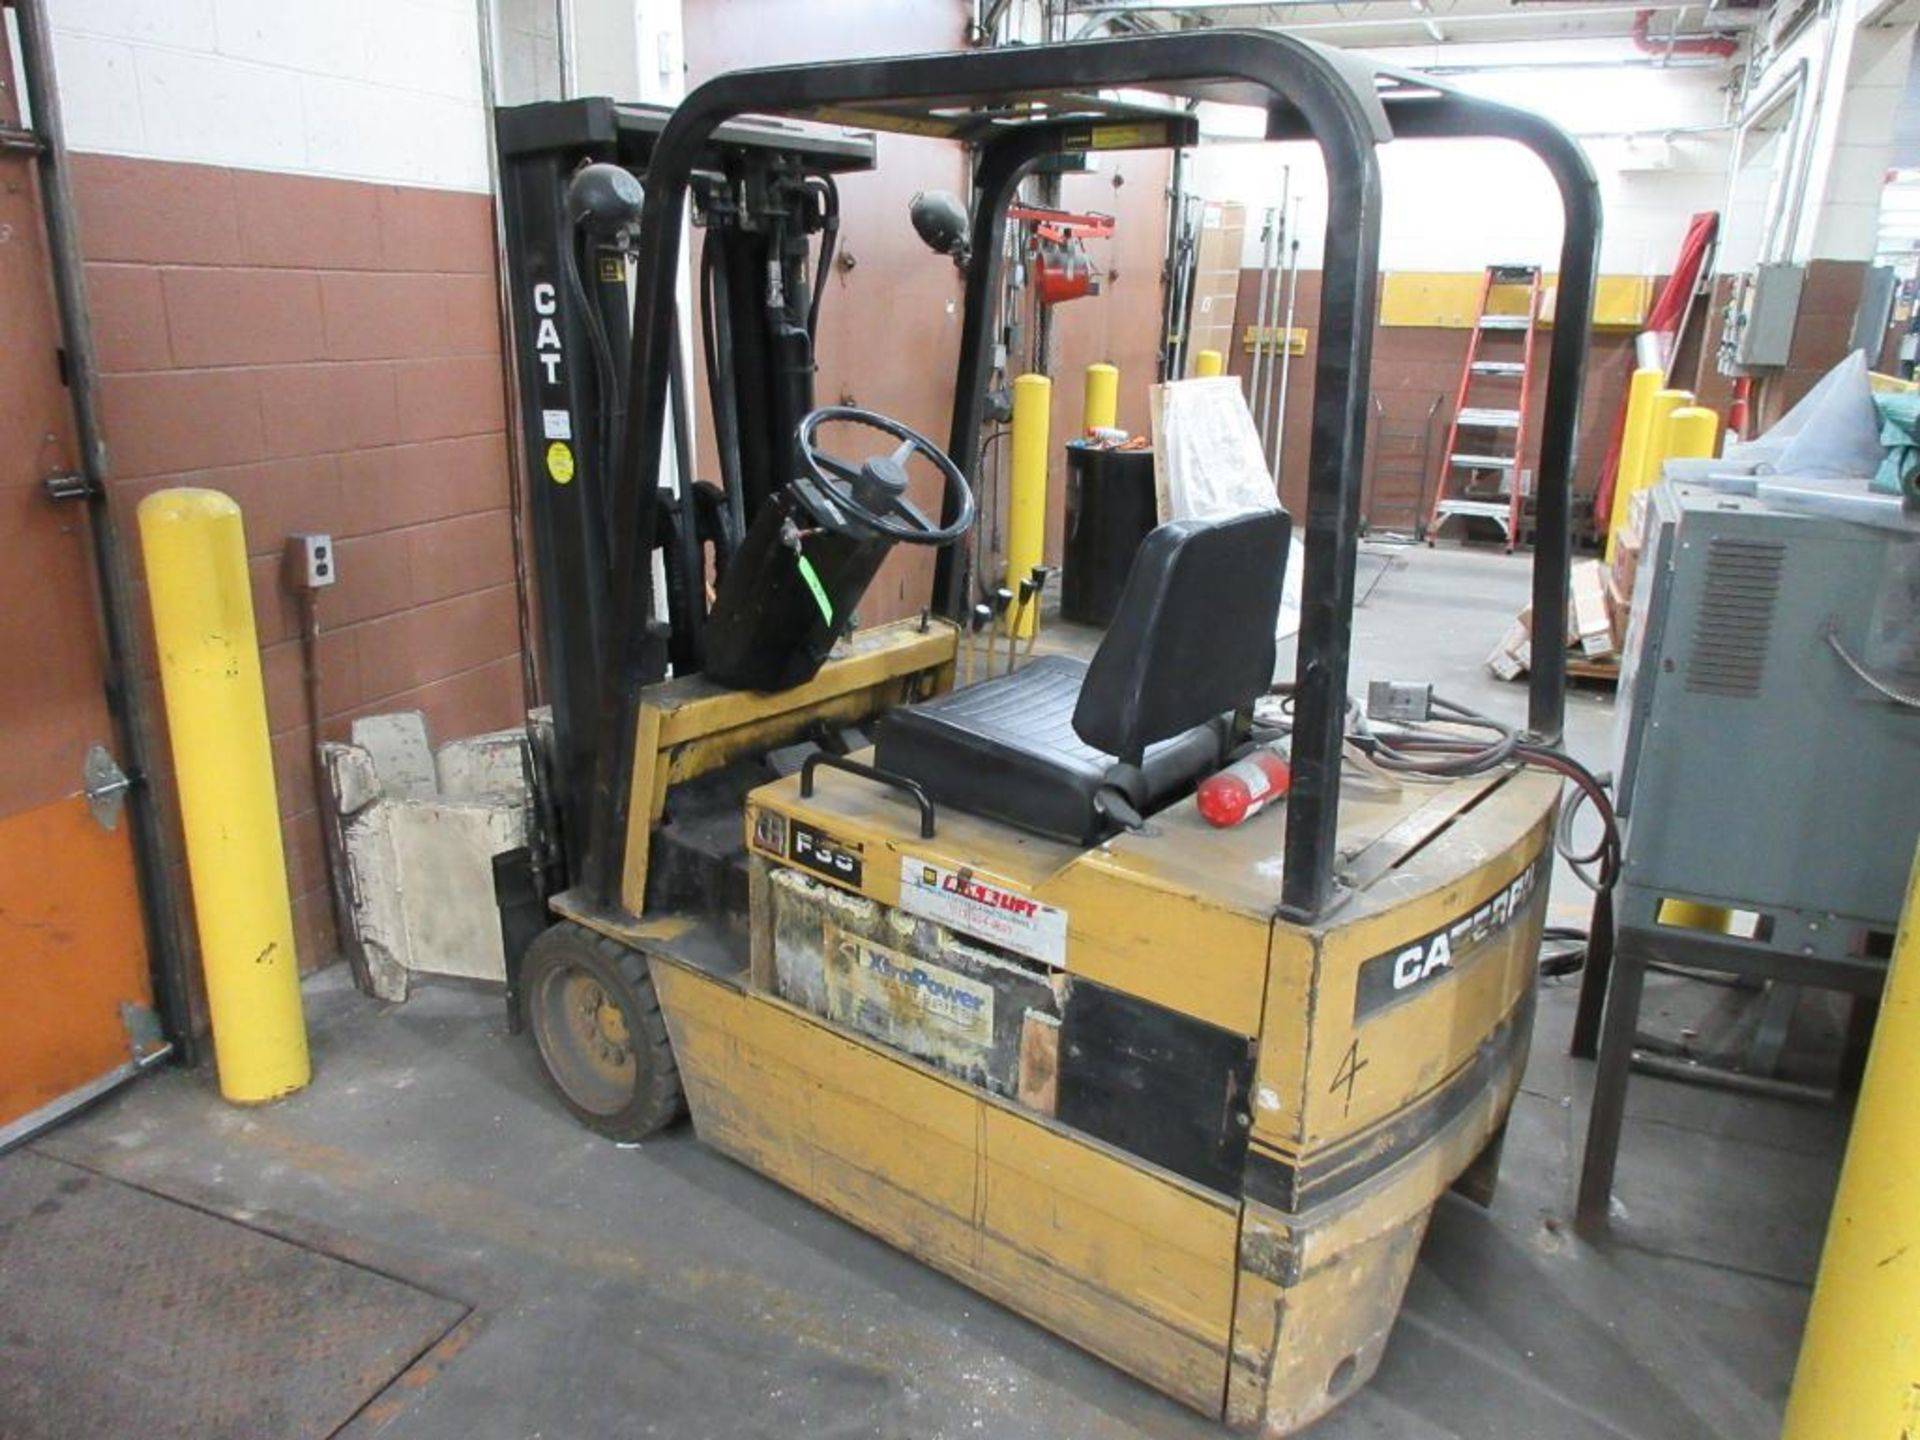 """Caterpillar 3,250 lb capacity, 3 wheel electric clamp forklift, model F35, 3 stage mast, 191"""" lift h"""